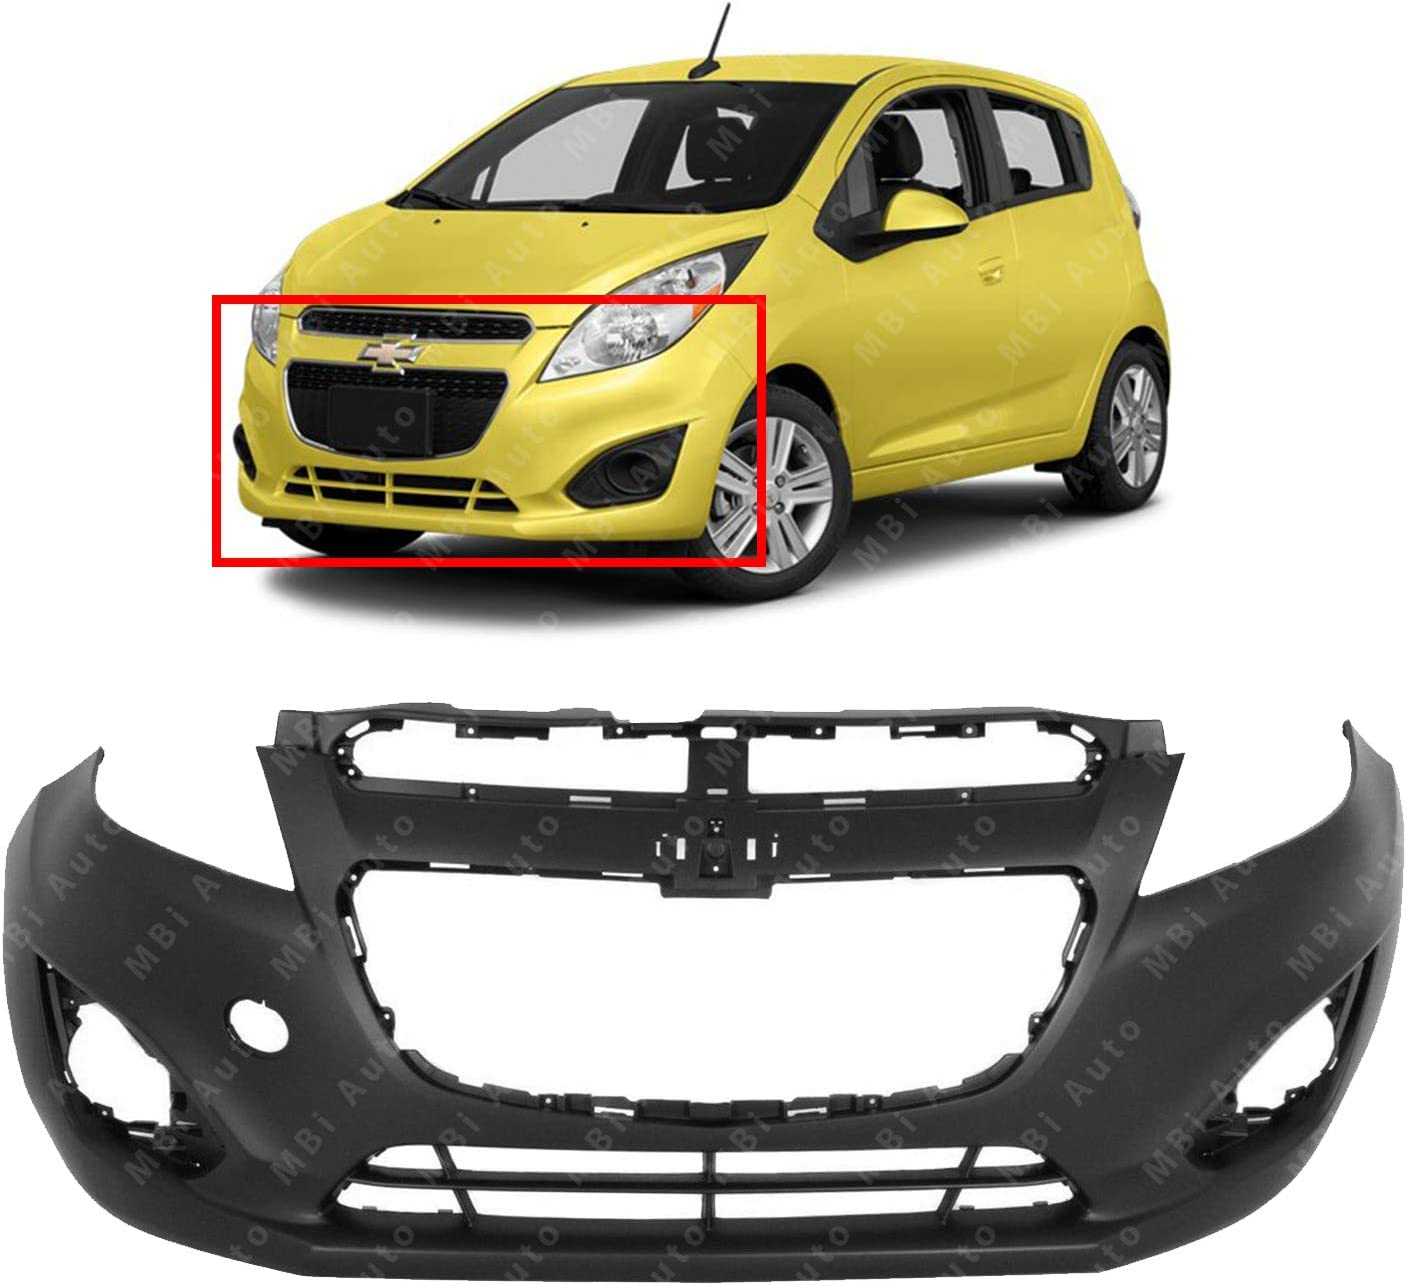 Front Bumper Cover Fascia for 2013 2014 2015 Chevrolet Chevy Spark Hatchback 13 14 15 MBI AUTO Primered GM1000935